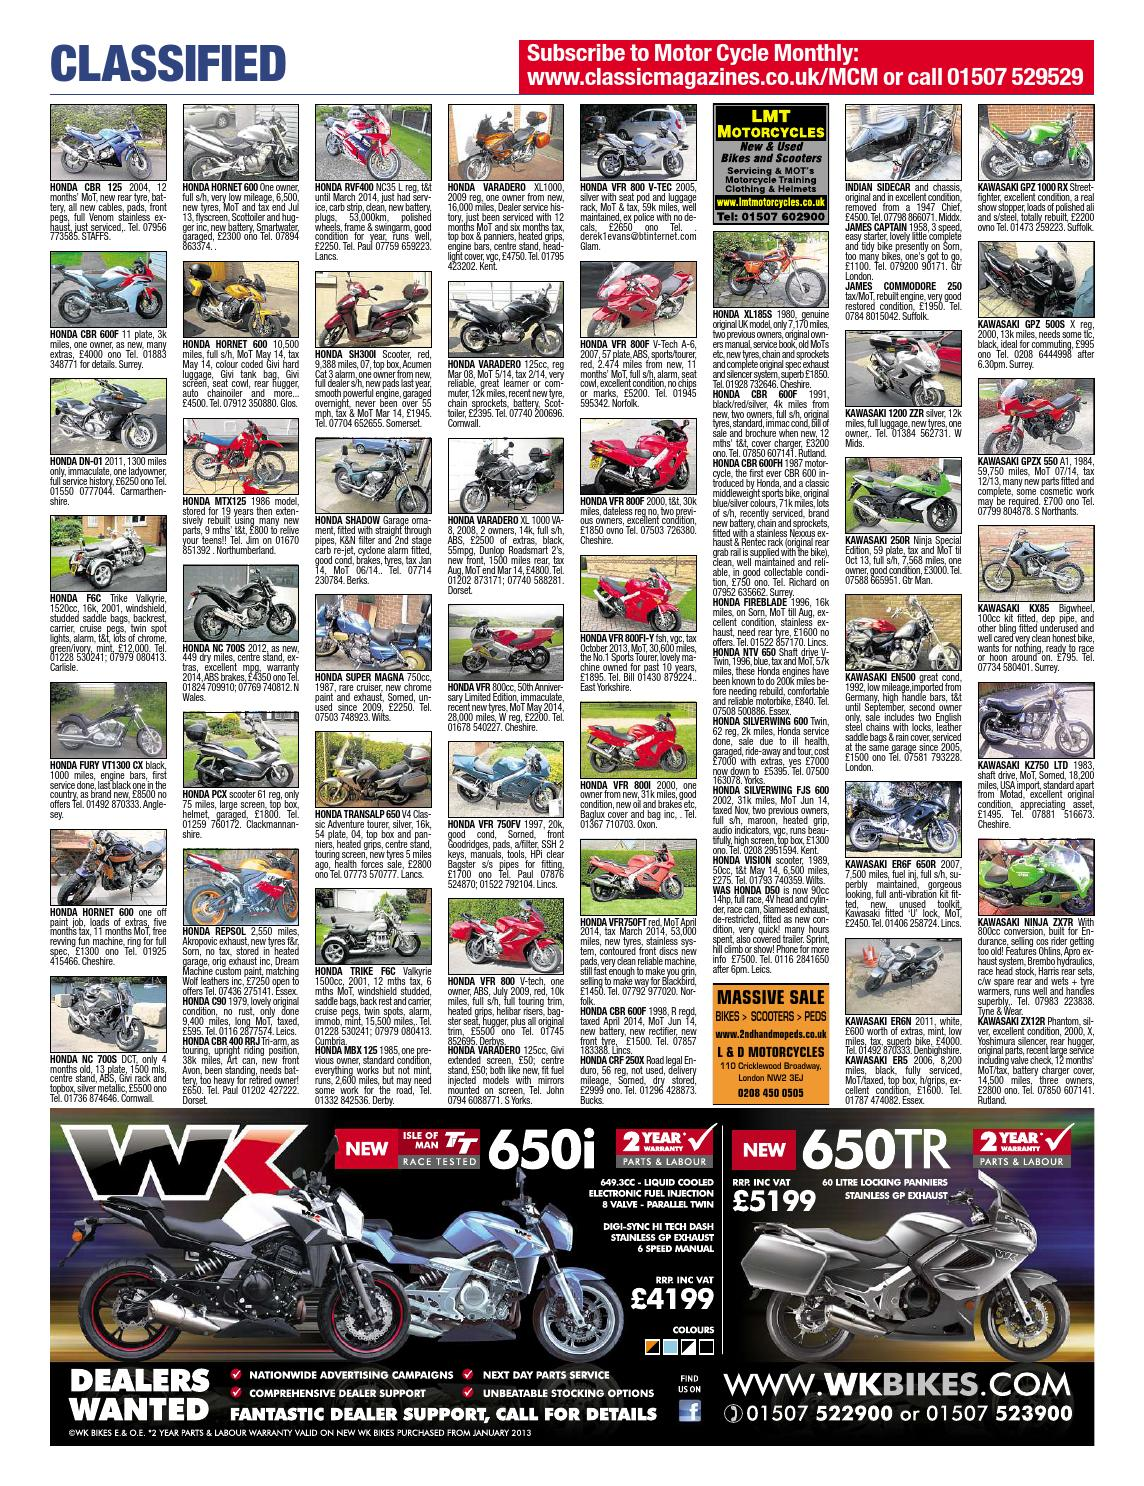 Motor Cycle Monthly - September 2013 by Mortons Media Group